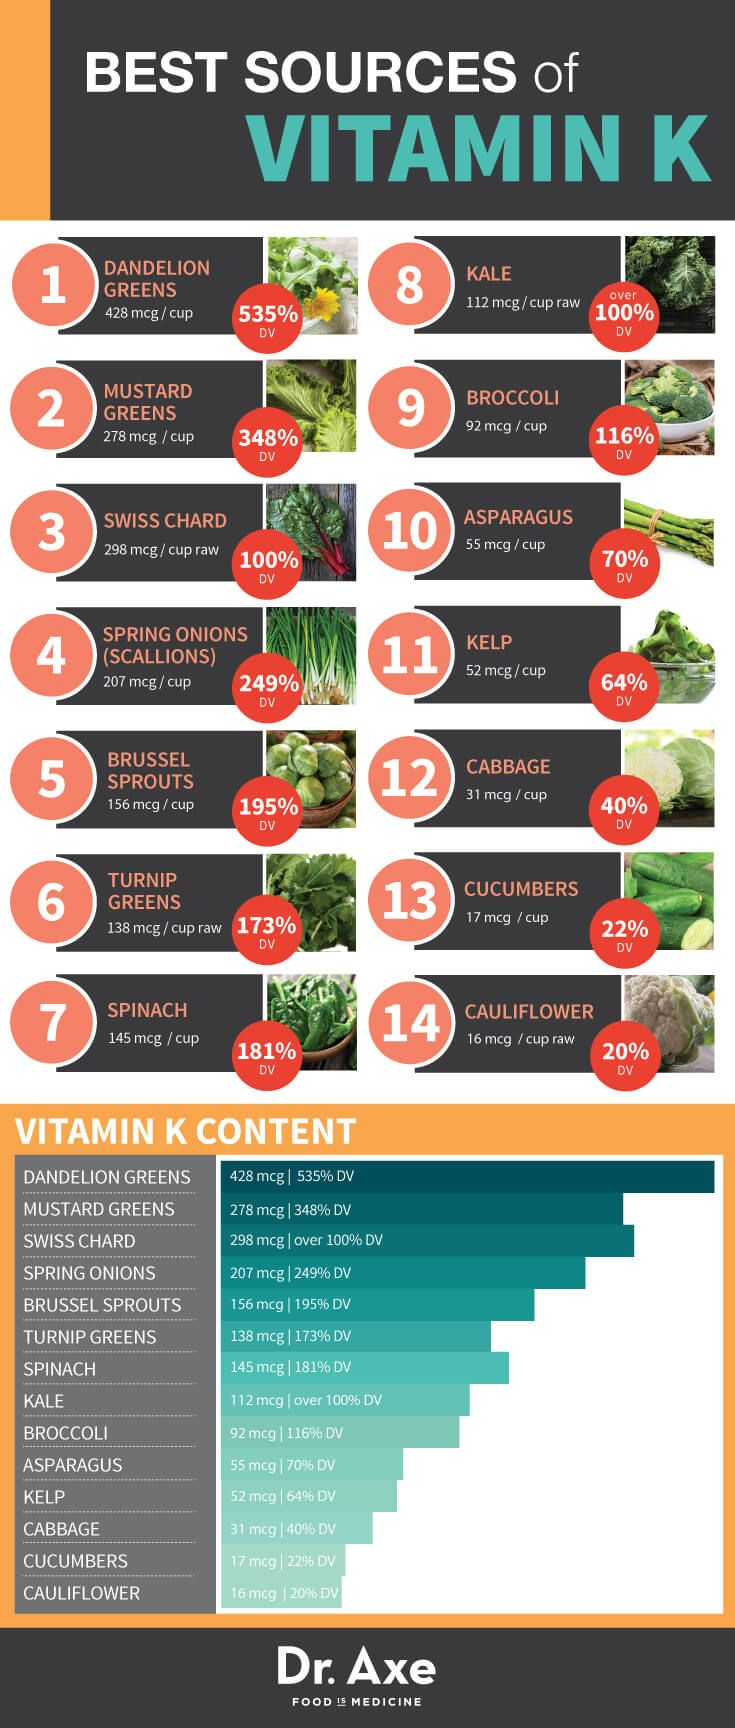 Vitamin K May Help With Dark Circles Under Your Eyes After All!  www.MarysLocalMarket.com Sustainable-Natural-Community #maryslocalmarket